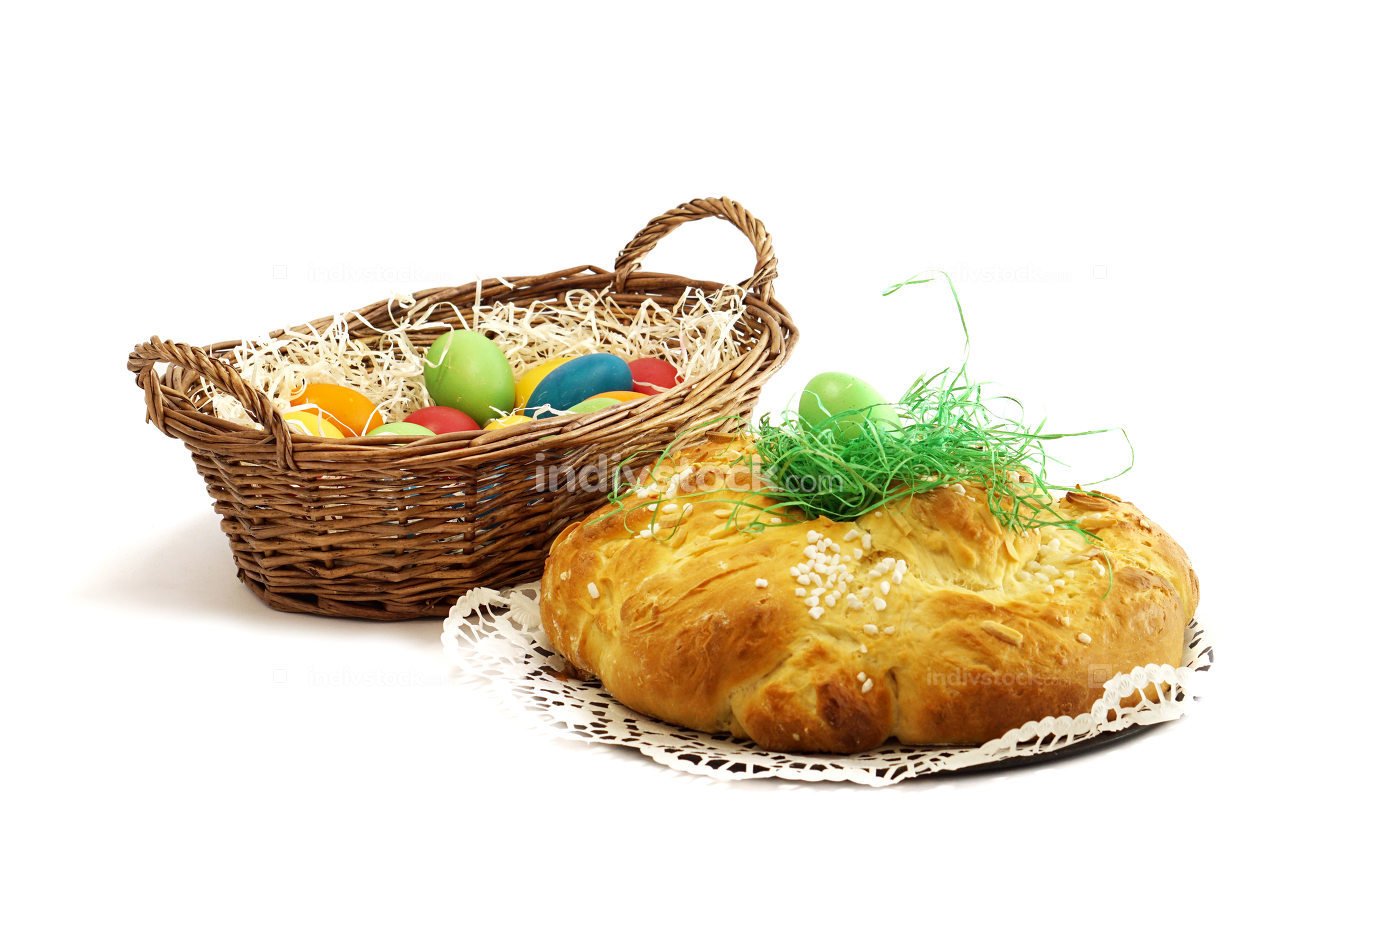 easter eggs in basket with yeast pastries bread plait